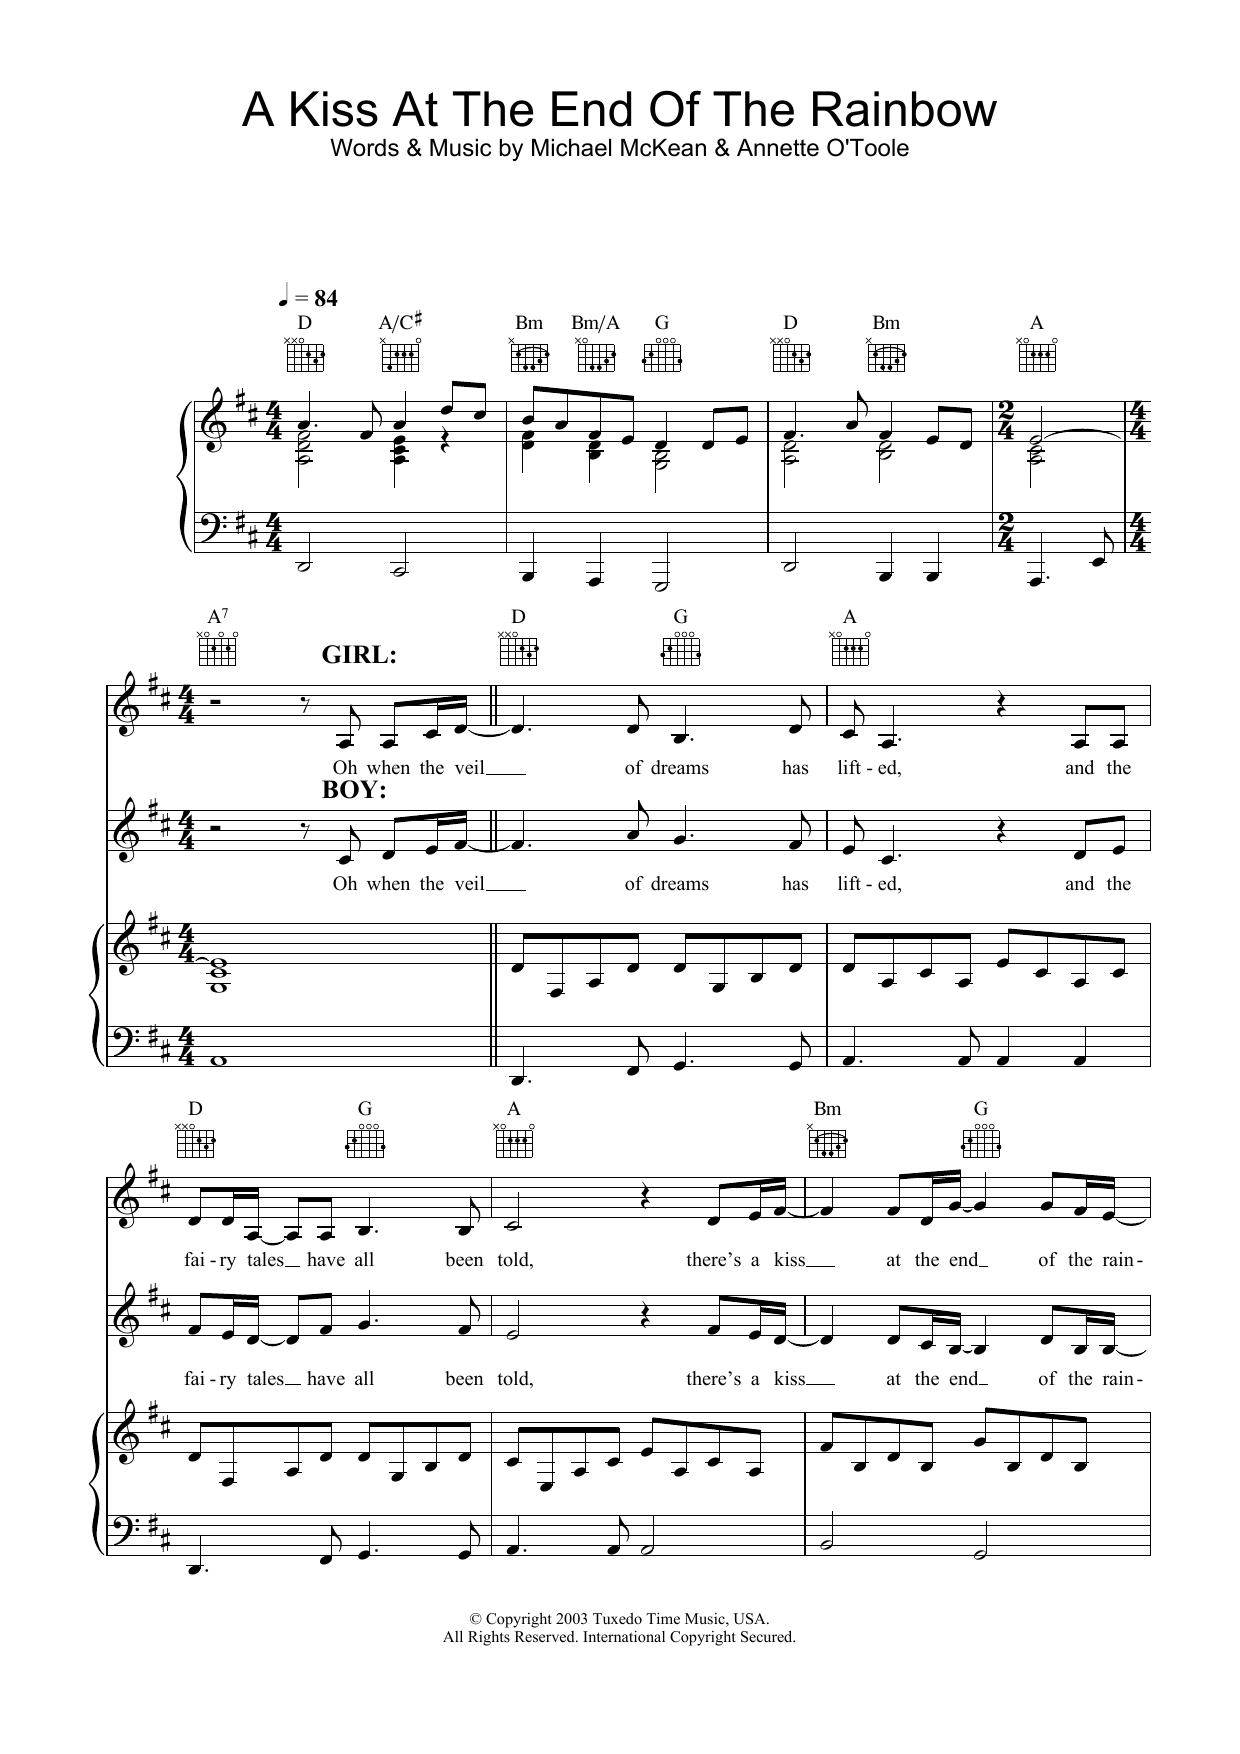 A Kiss At The End Of The Rainbow Sheet Music